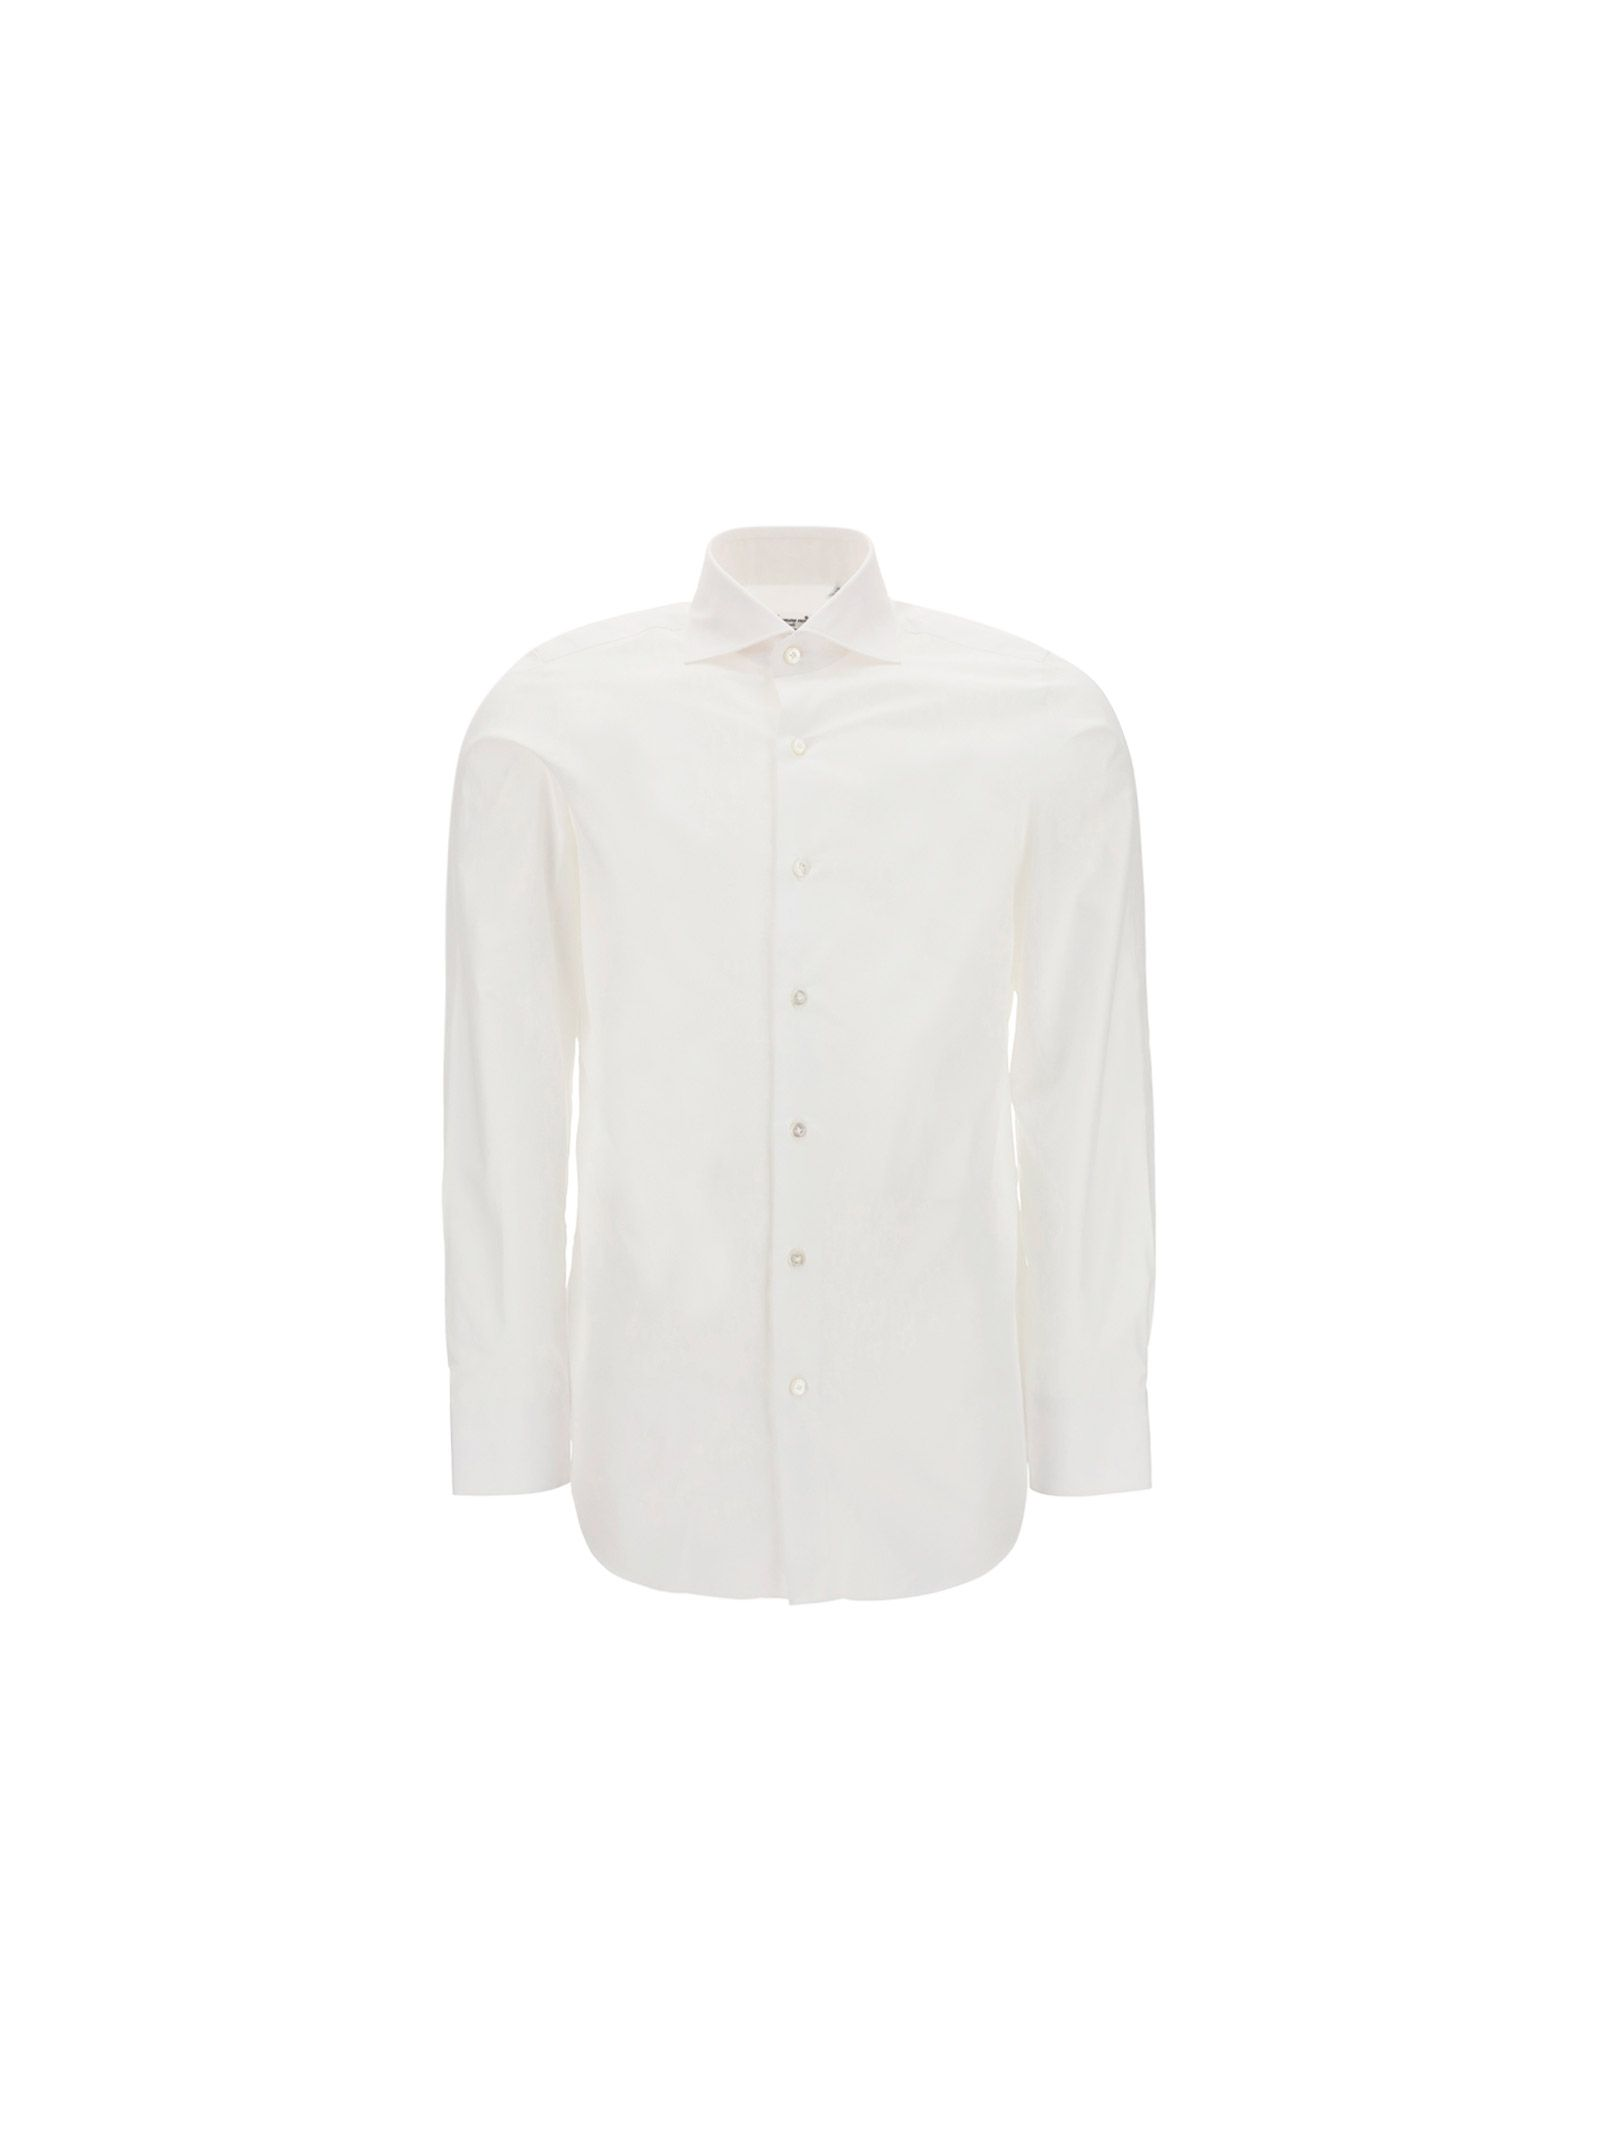 Finamore FINAMORE MEN'S WHITE OTHER MATERIALS SHIRT